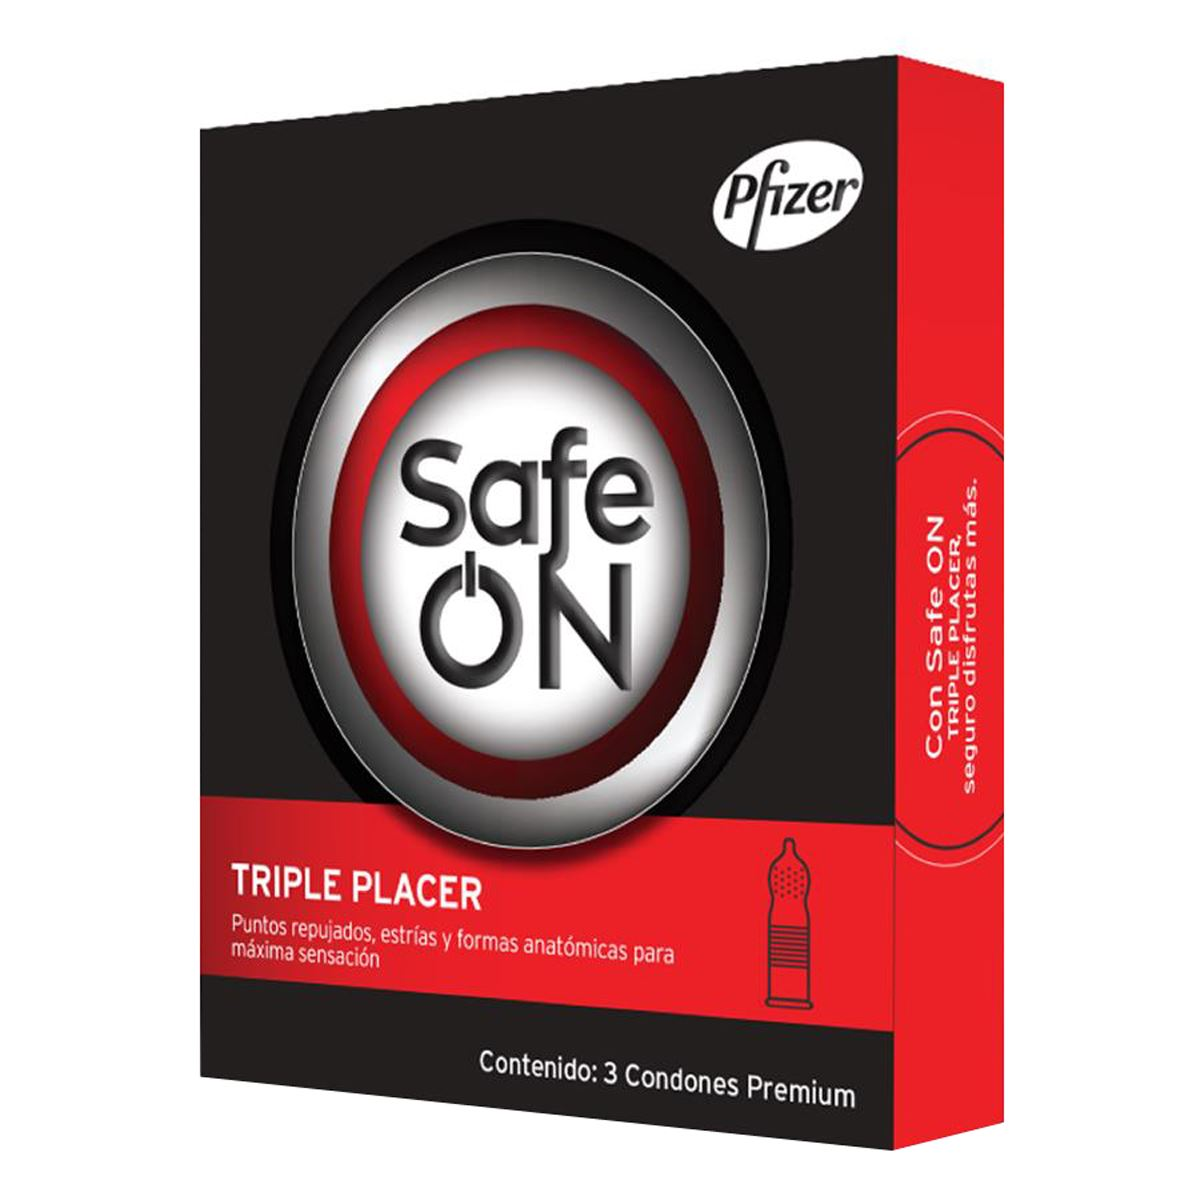 Preservativo triple placer con 3 piezas safe on  - Sanborns